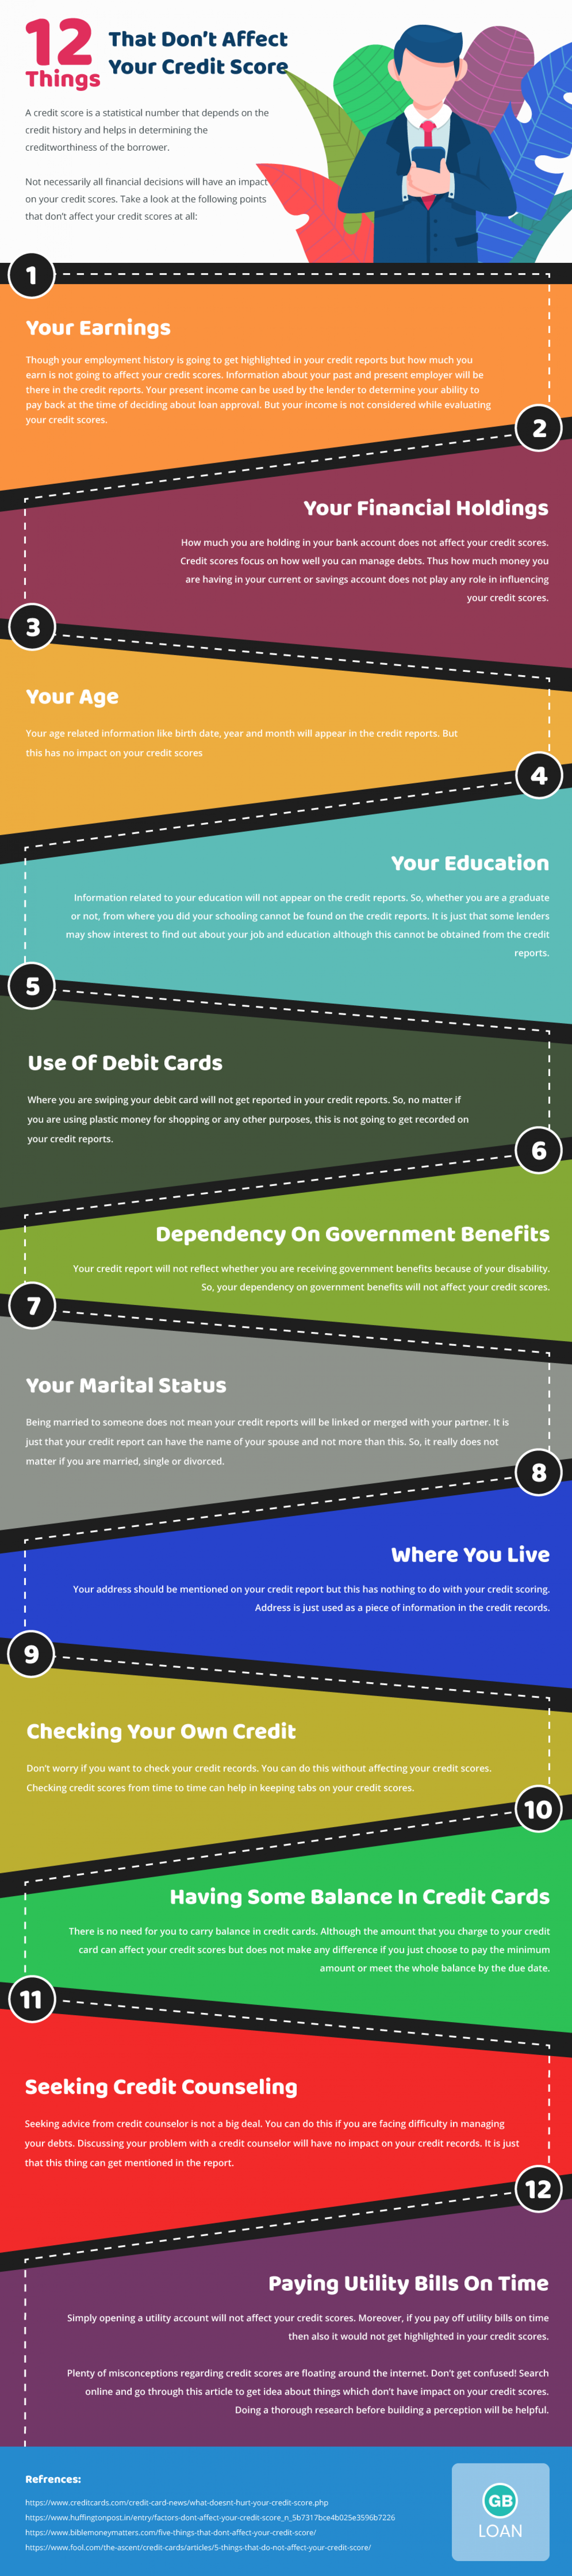 Things That Do Not Affect Your Credit Score Infographic